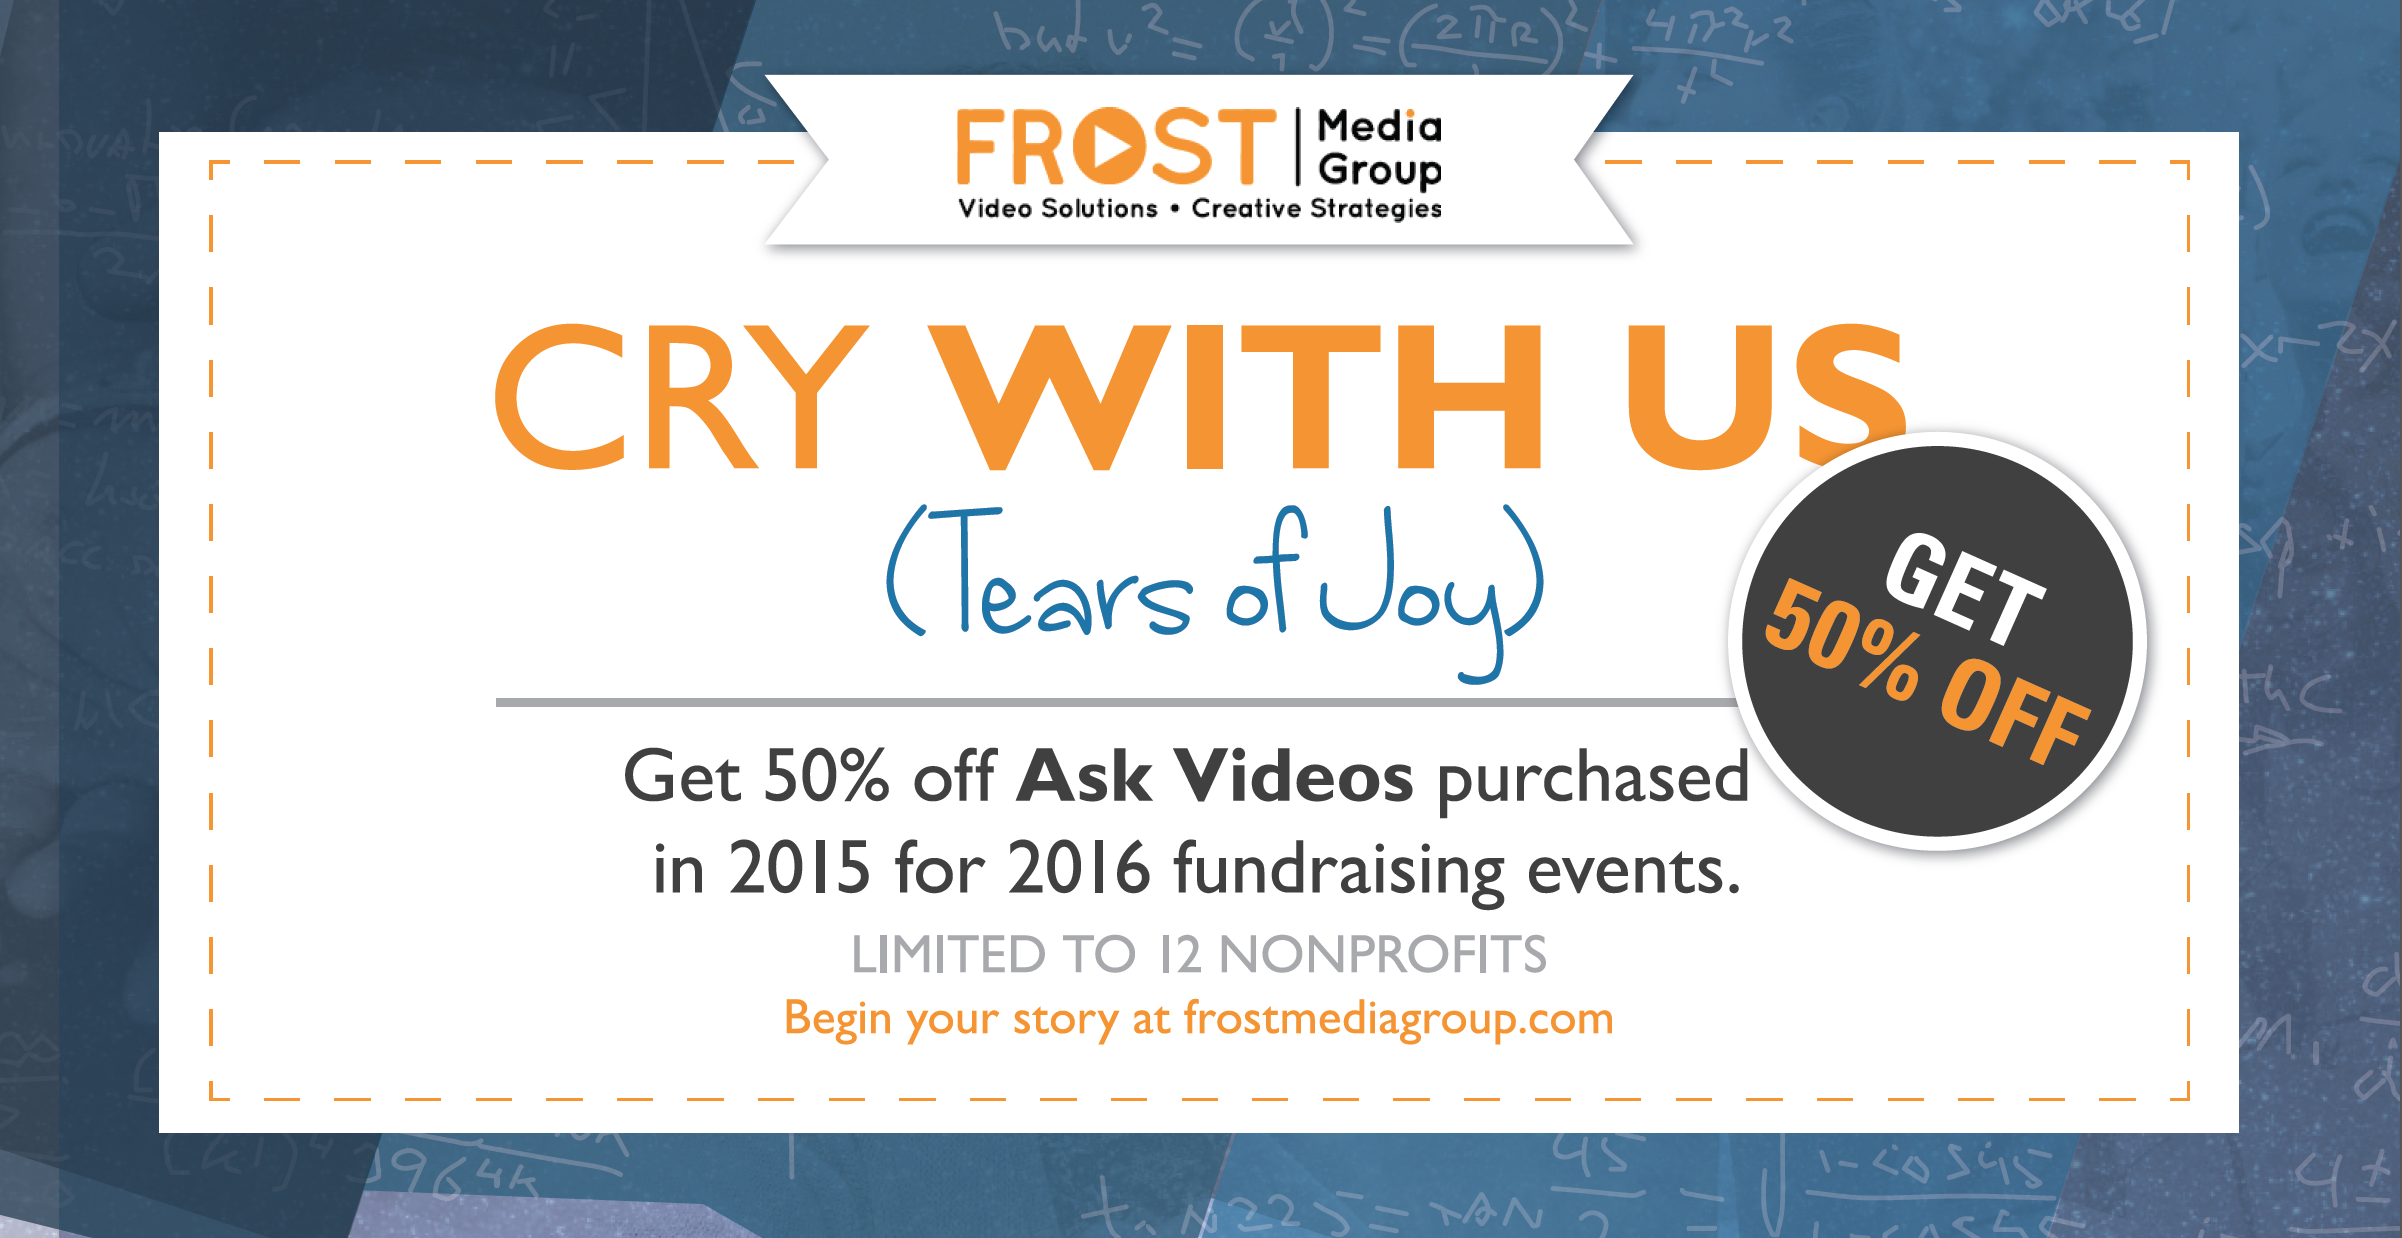 Nonprofits Save up to $3000 on Ask Videos with Frost Media Group